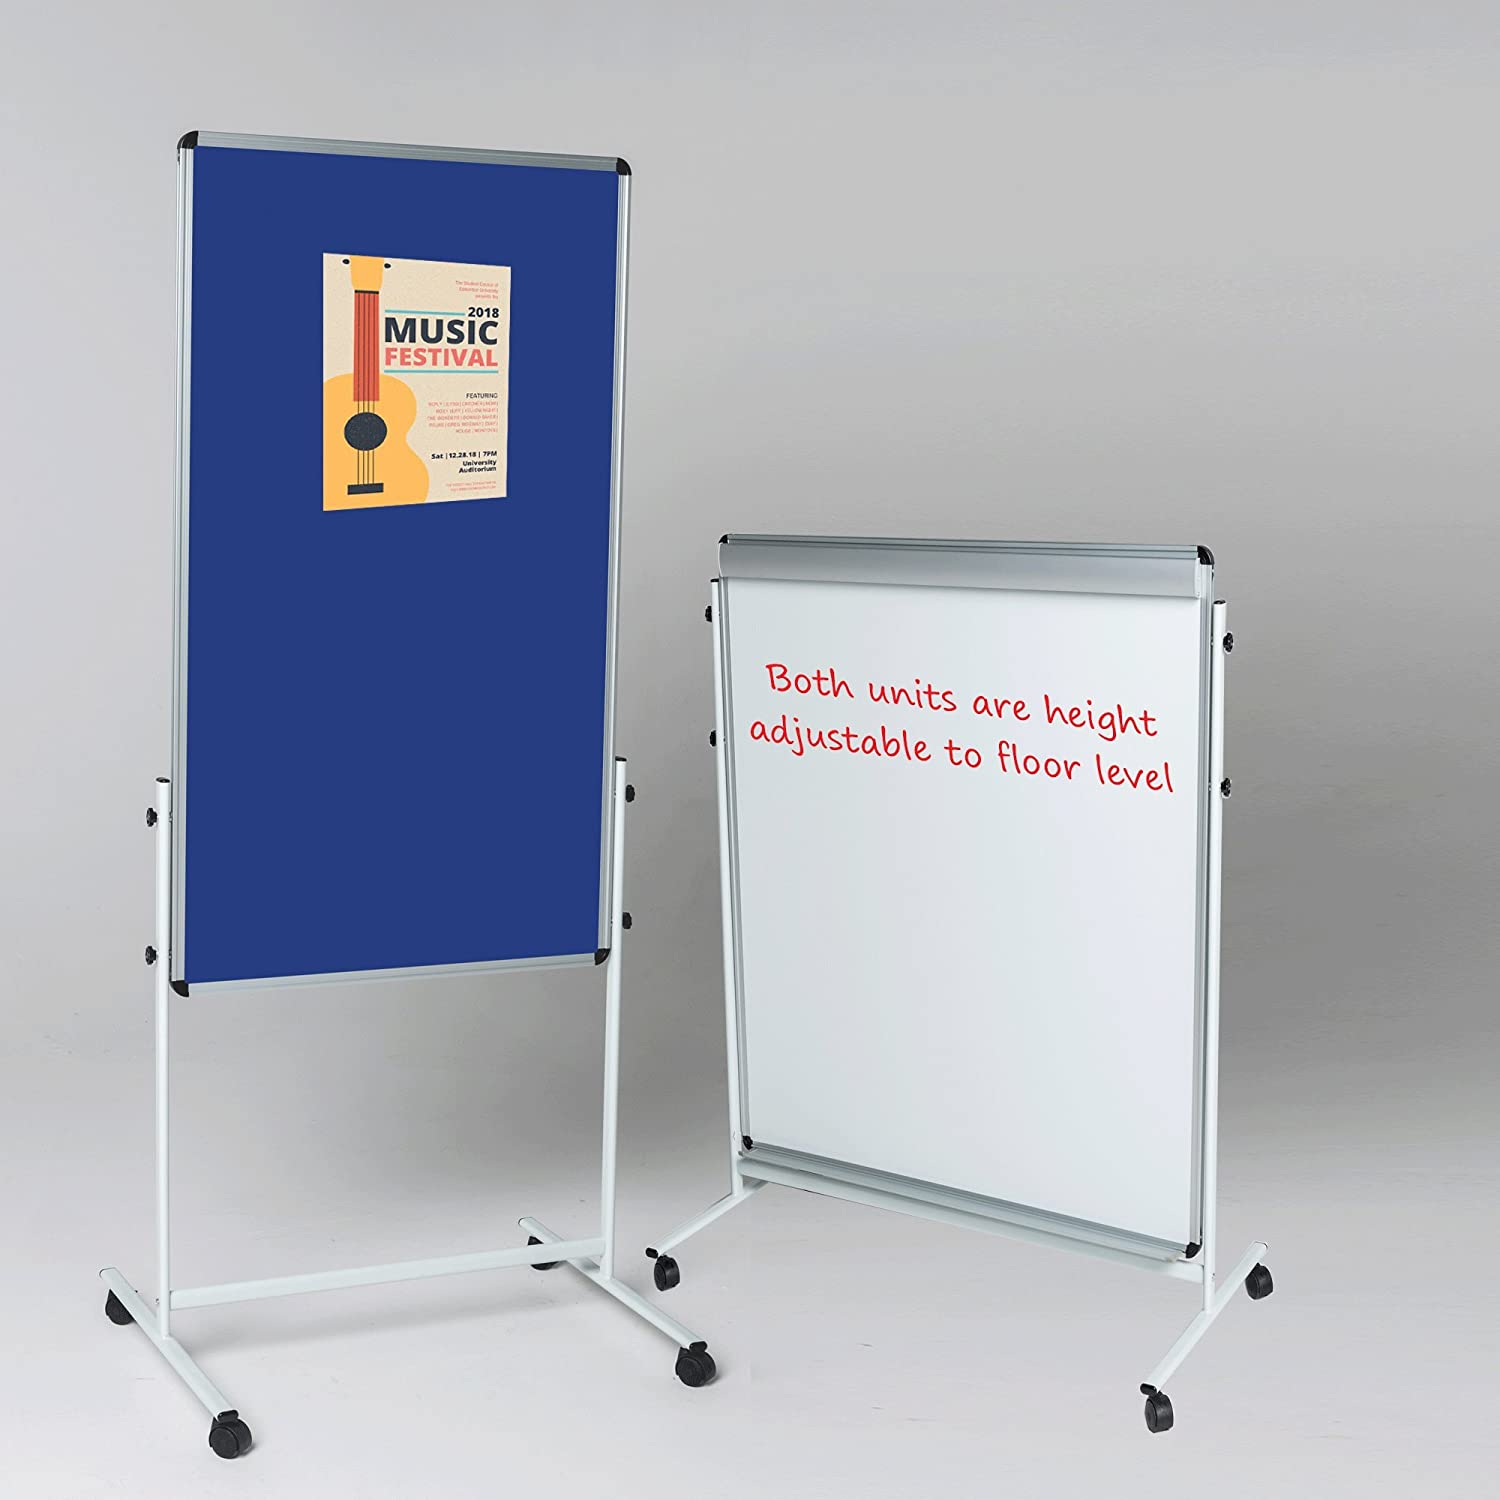 120 x 90 cm 2 Sizes to Choose from incl. Wonderwall Non-Magnetic Double-Sided Dry-Wipe Whiteboard with a Pack of 4 Dry Wipe pens